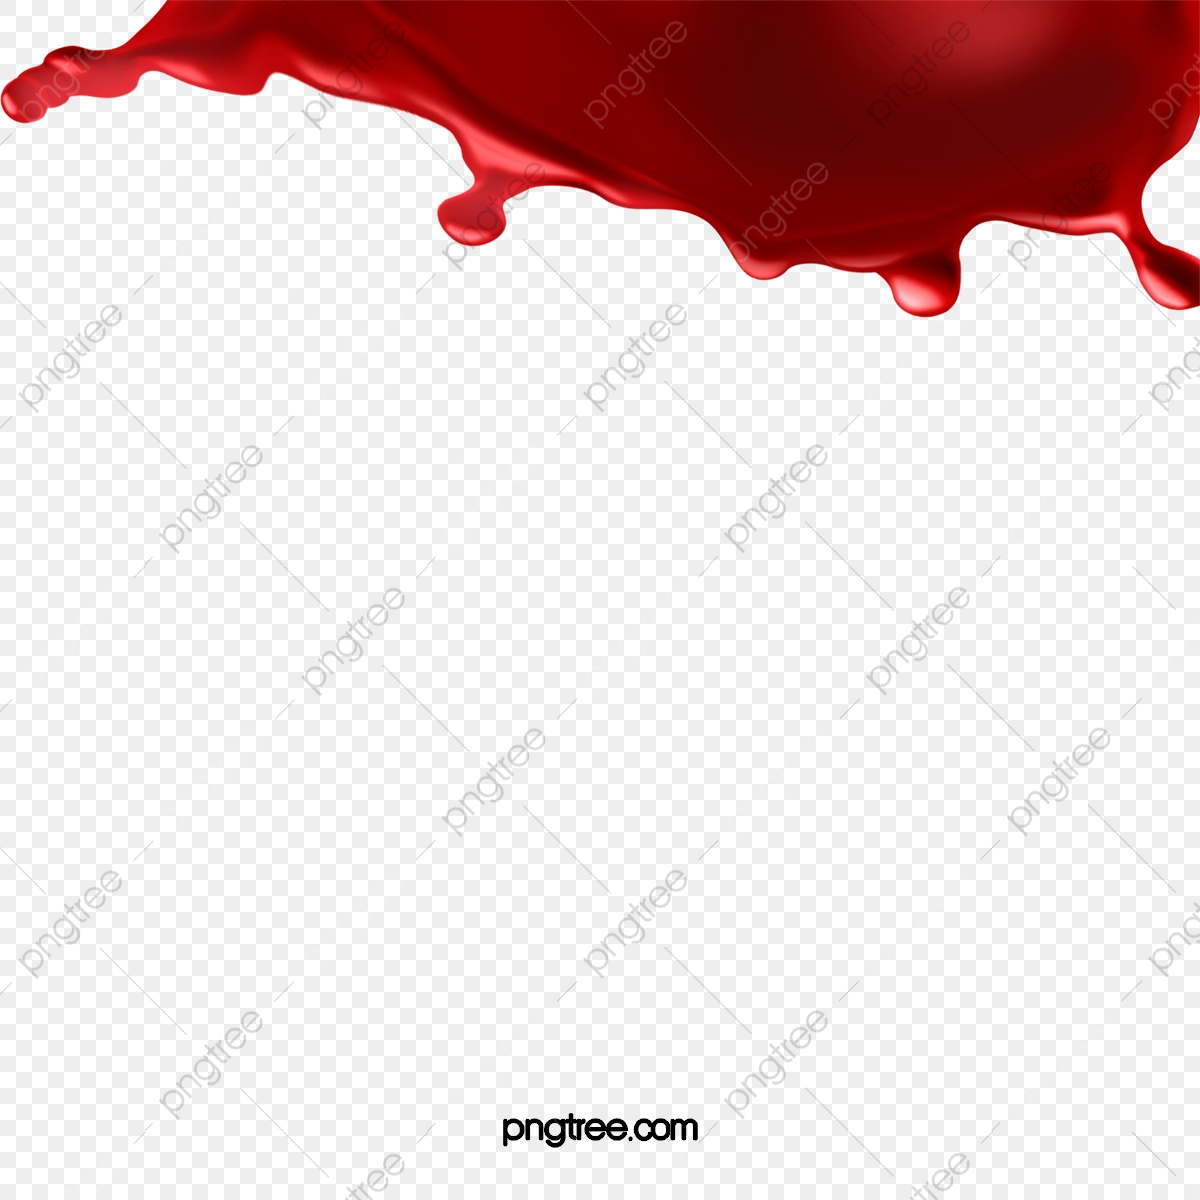 Red Texture Blood Drop Bleeding Frame Png Transparent Clipart Image And Psd File For Free Download Скачайте векторную иллюстрацию realistic driping blood dripping liquid texture drops and splashes of red jam splatter paint dripping inks flows stains on wall current droplet for. https pngtree com freepng red texture 5163111 html